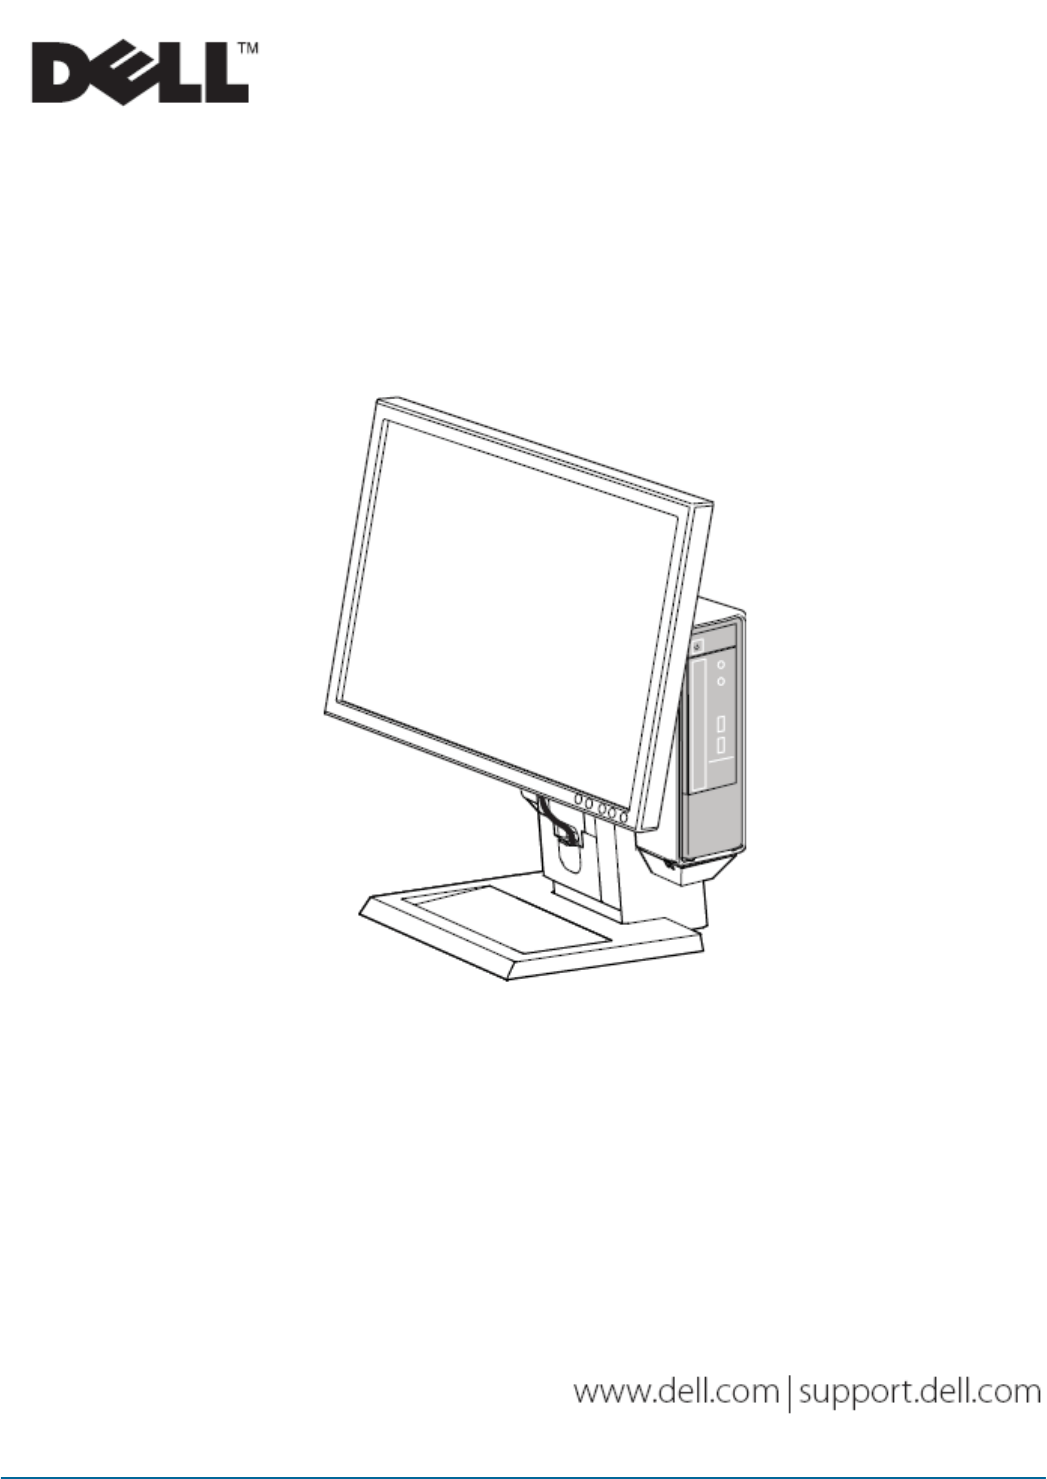 Dell 1909W, ARAIO, P2210 manual